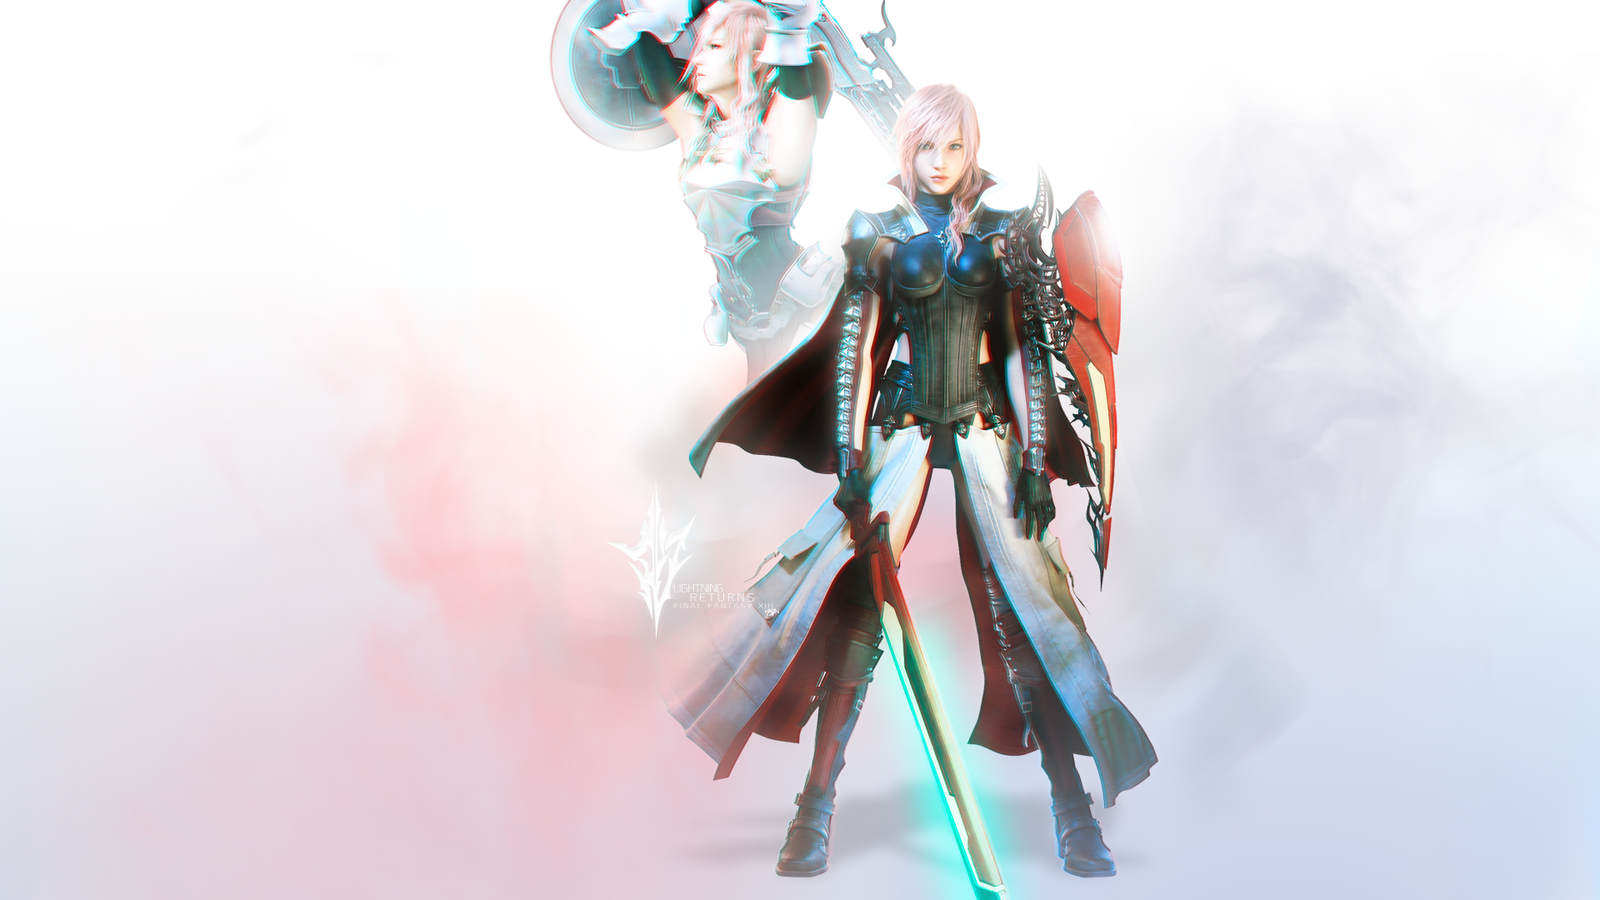 lightning returns ffxiii wallpaper by mikoyanx on deviantart